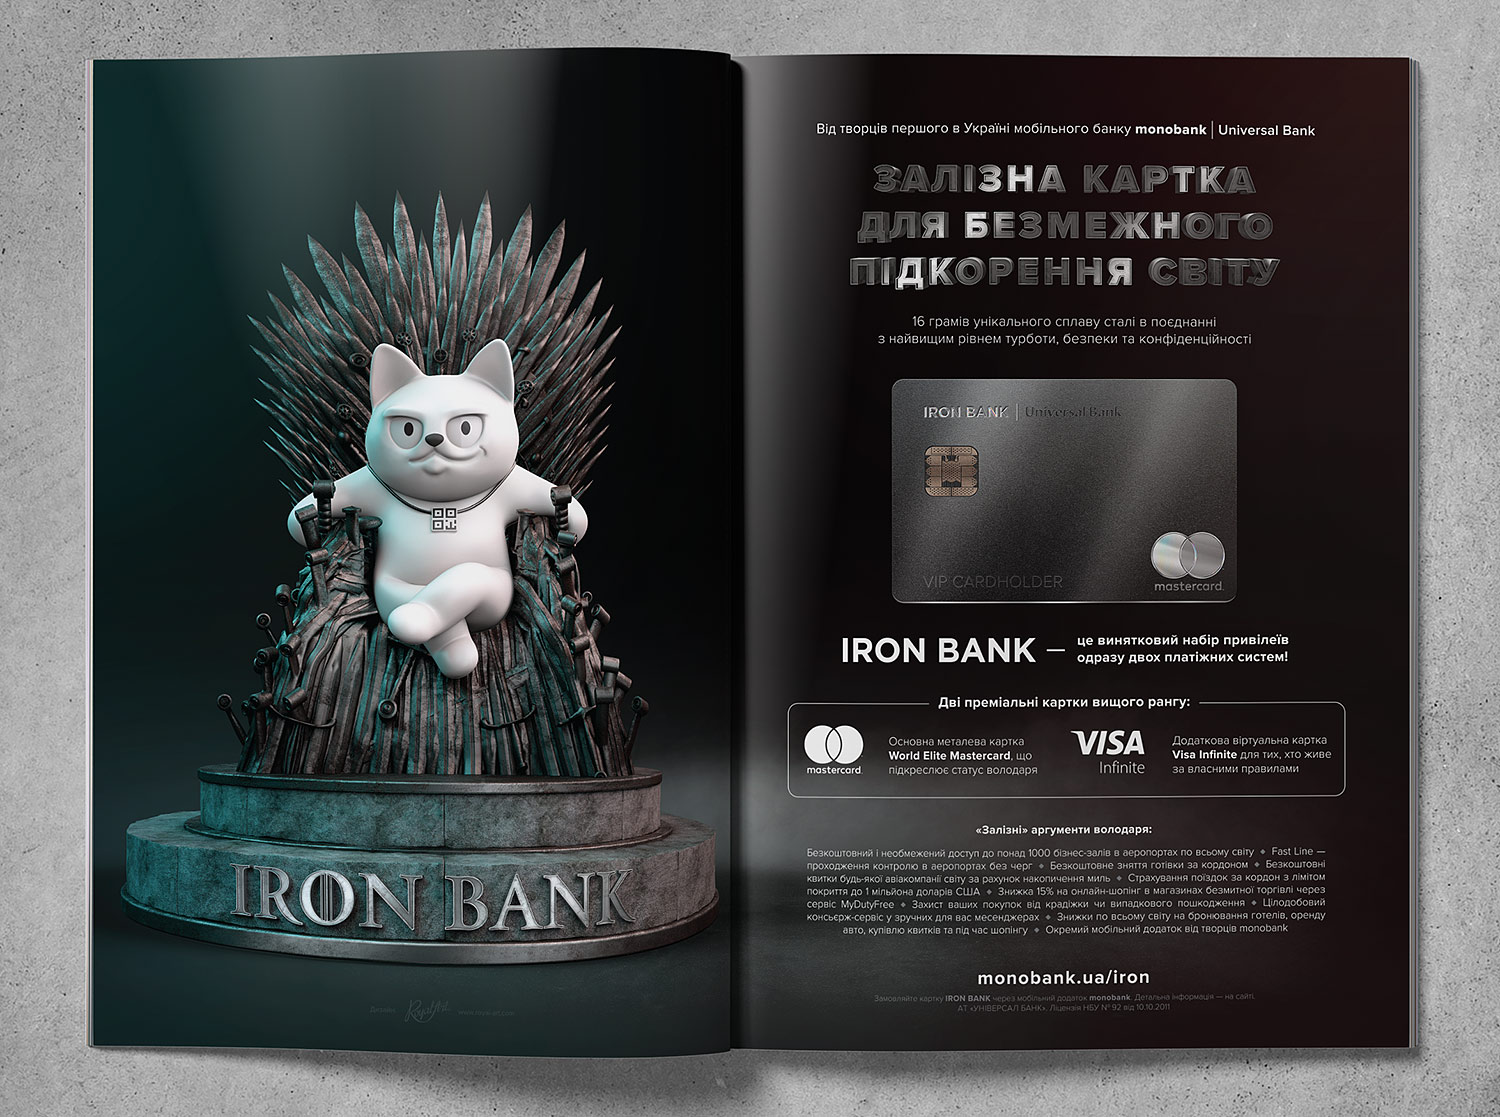 The iron throne and the IRON BANK metal card. The cat on the throne 3D visualization, the bank card and iron 3D letters. World Elite Mastercard and Visa Infinite.